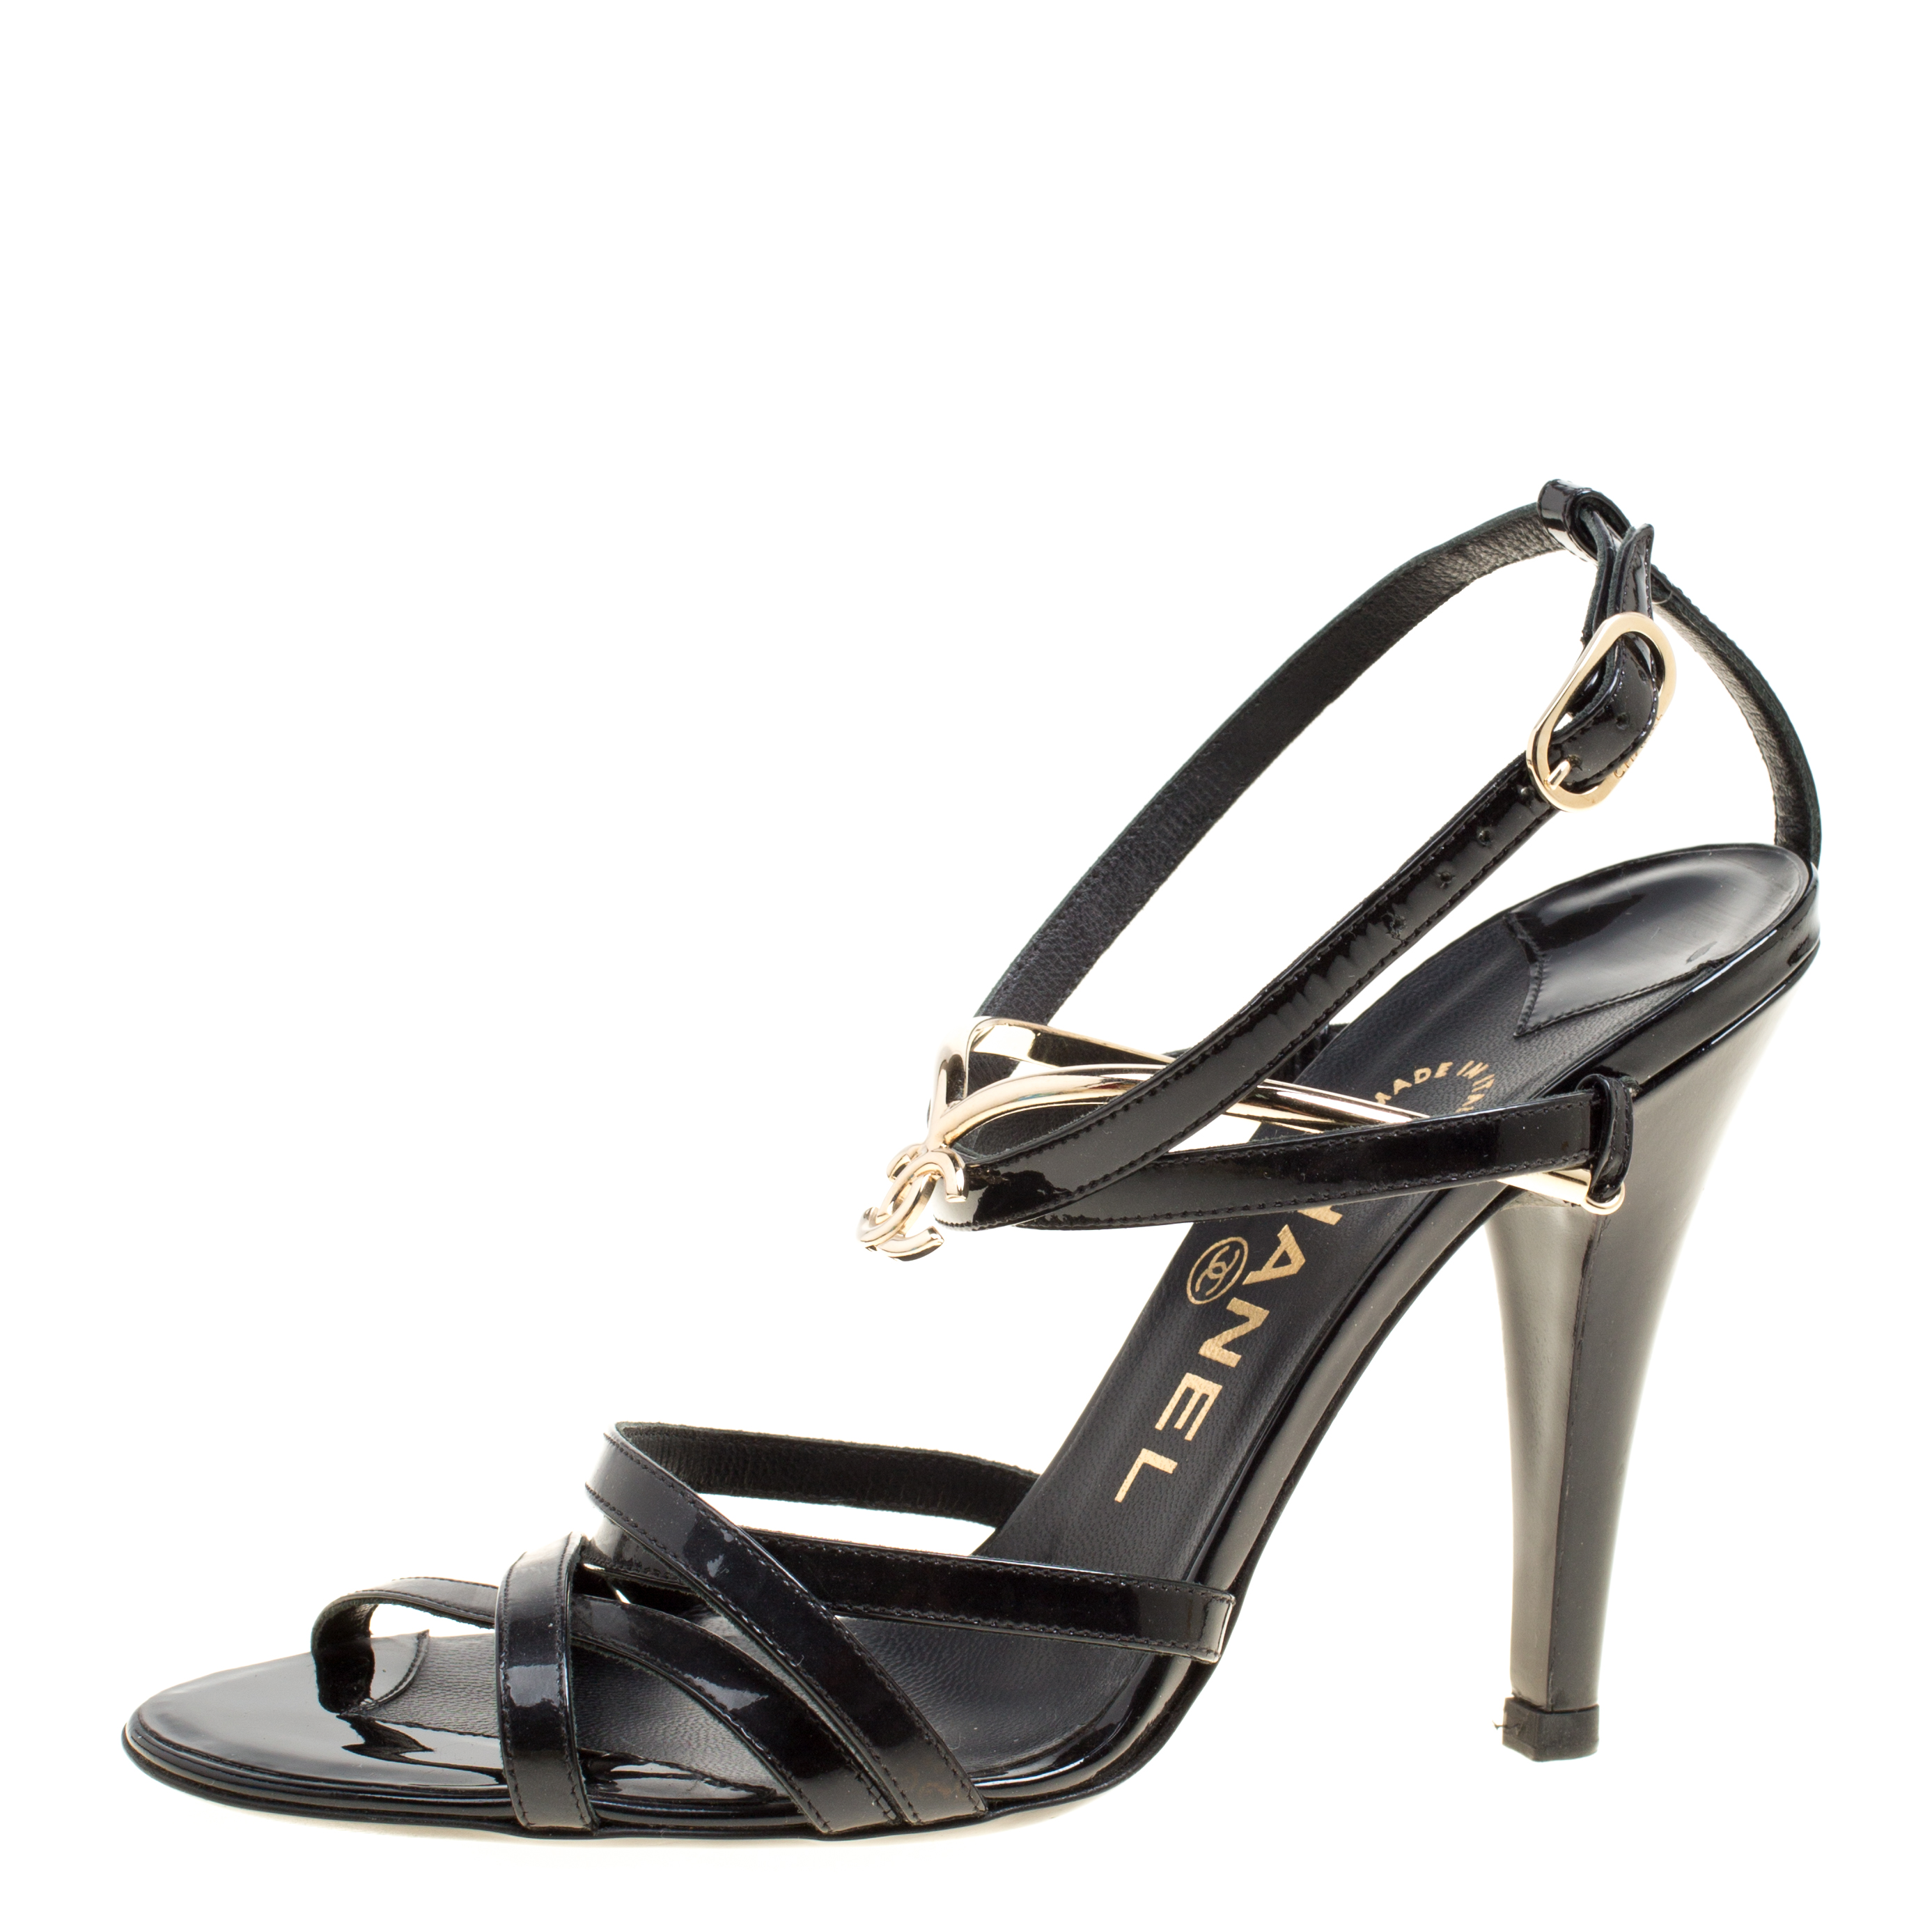 66330b0803c ... Chanel Black Patent Leather Strappy Sandals Size 36. nextprev. prevnext